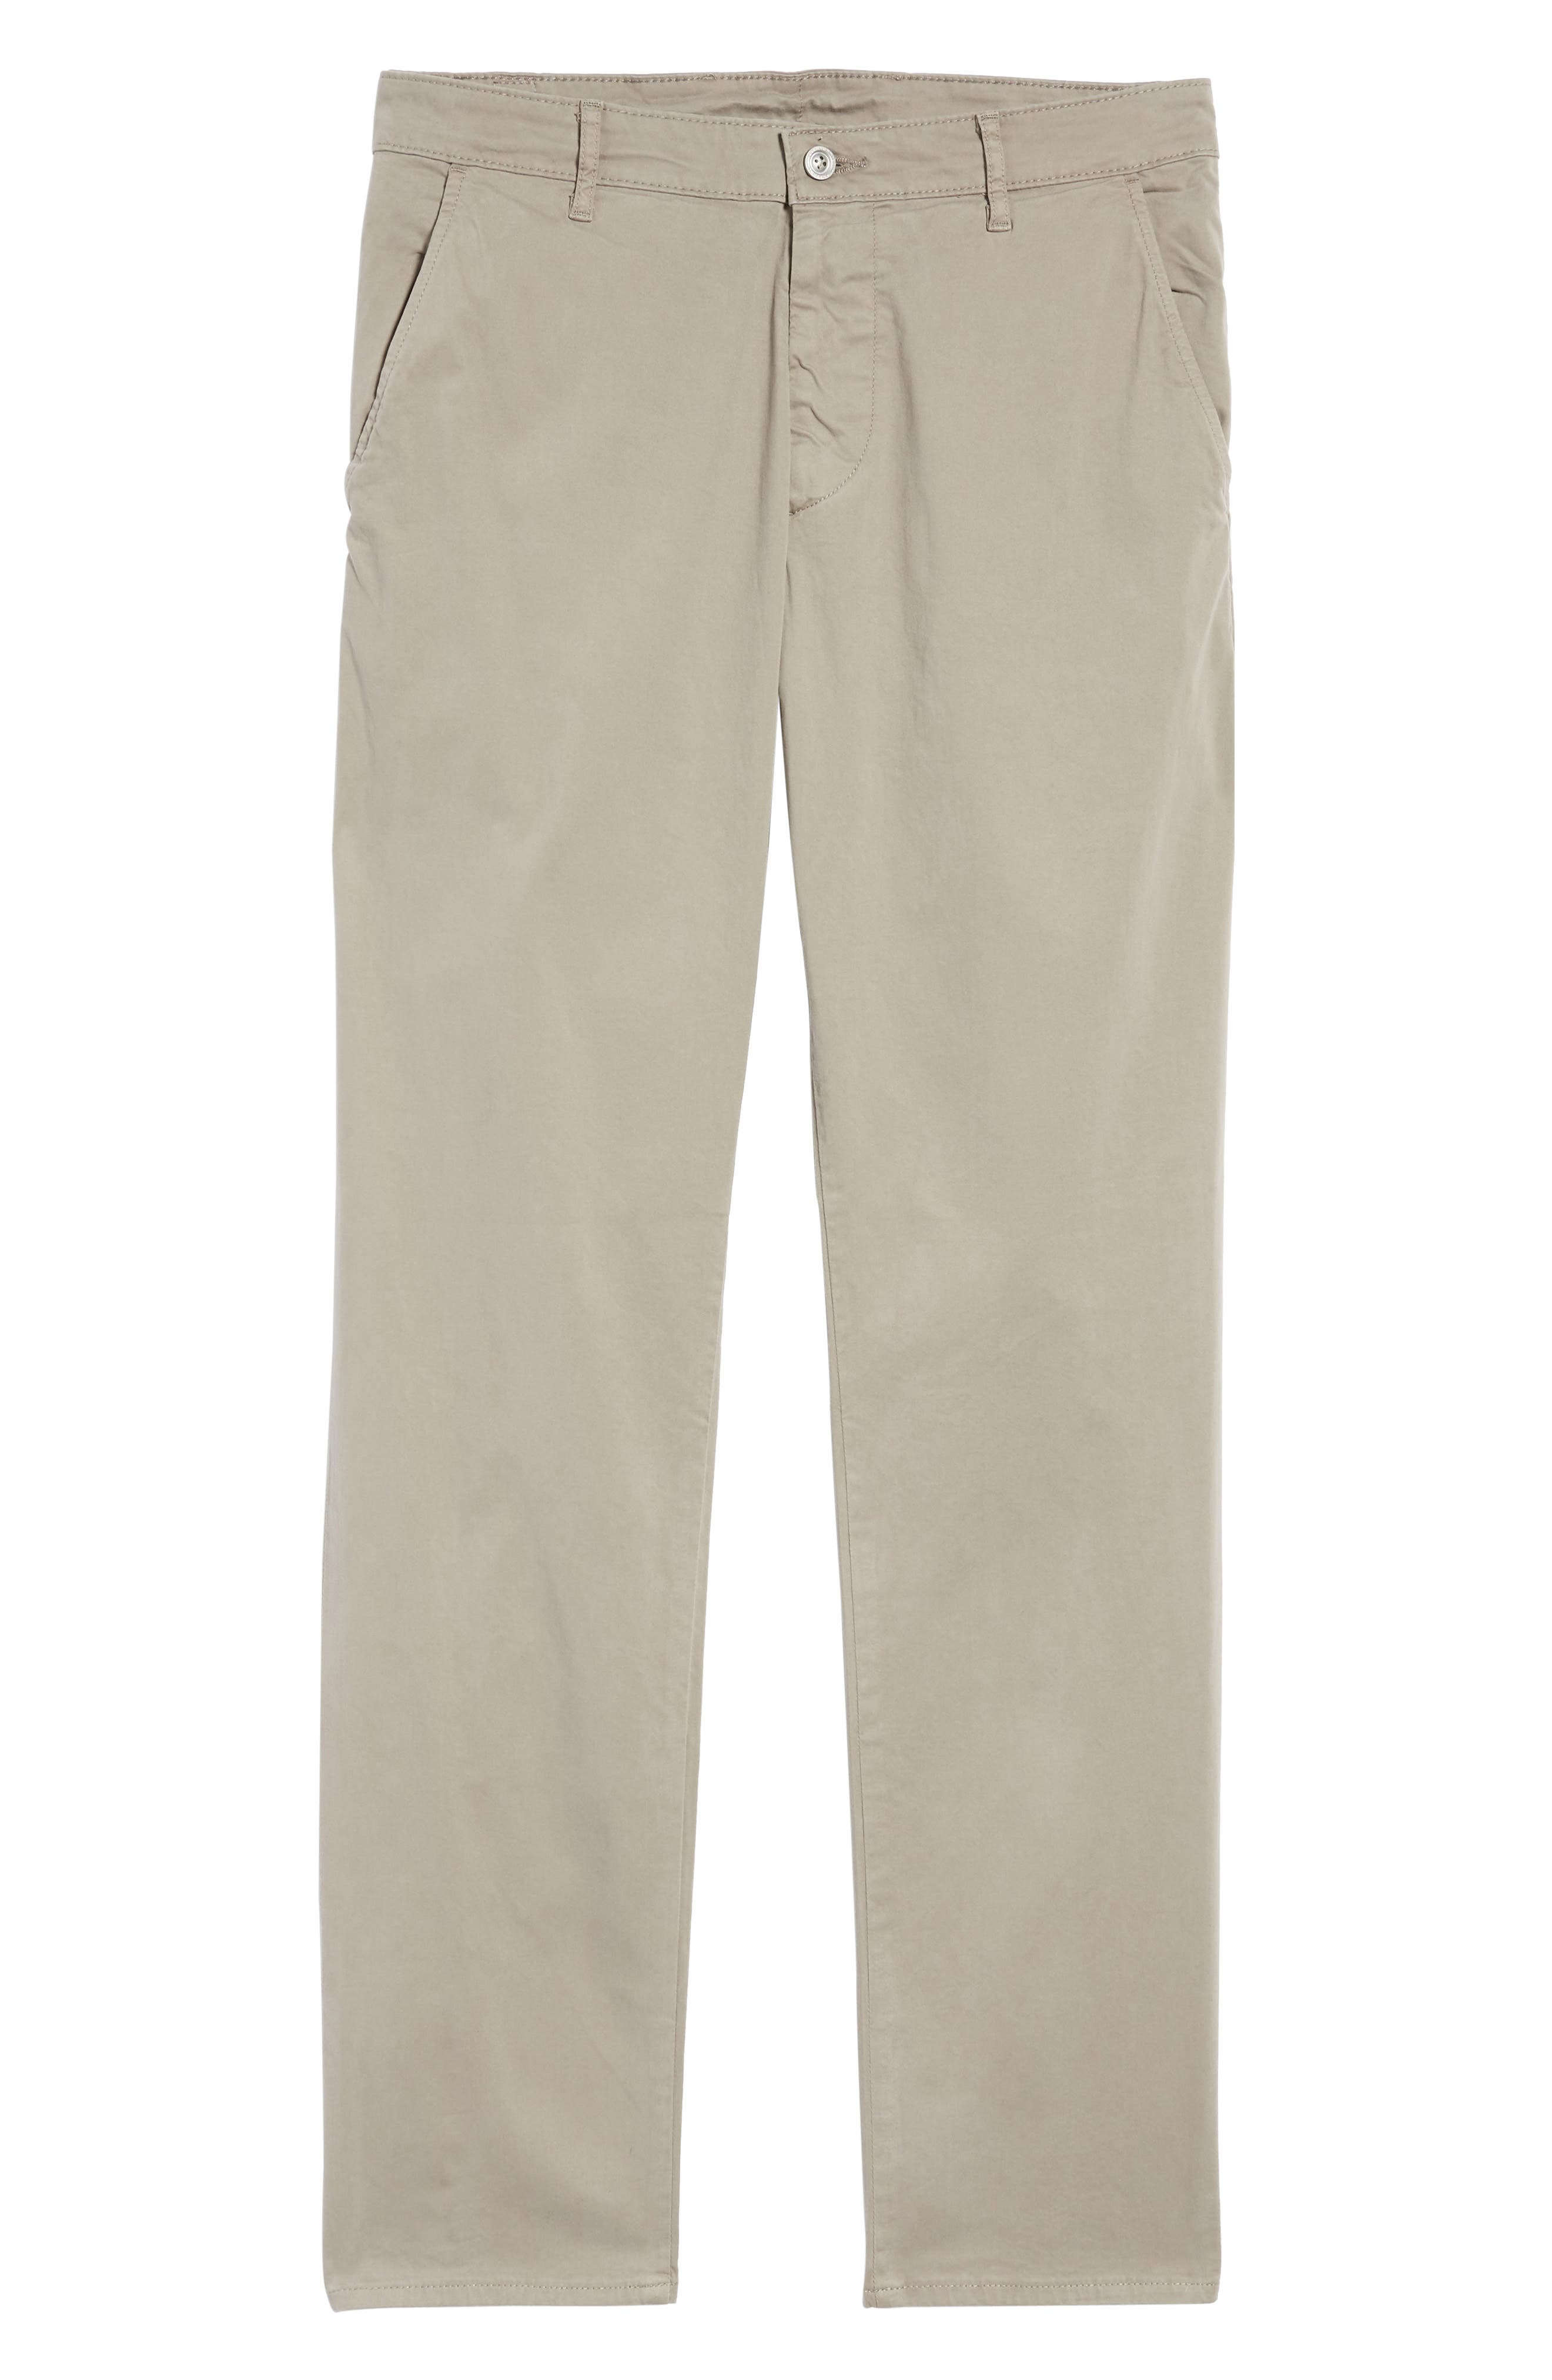 'The Lux' Tailored Straight Leg Chinos,                             Alternate thumbnail 6, color,                             Stucco